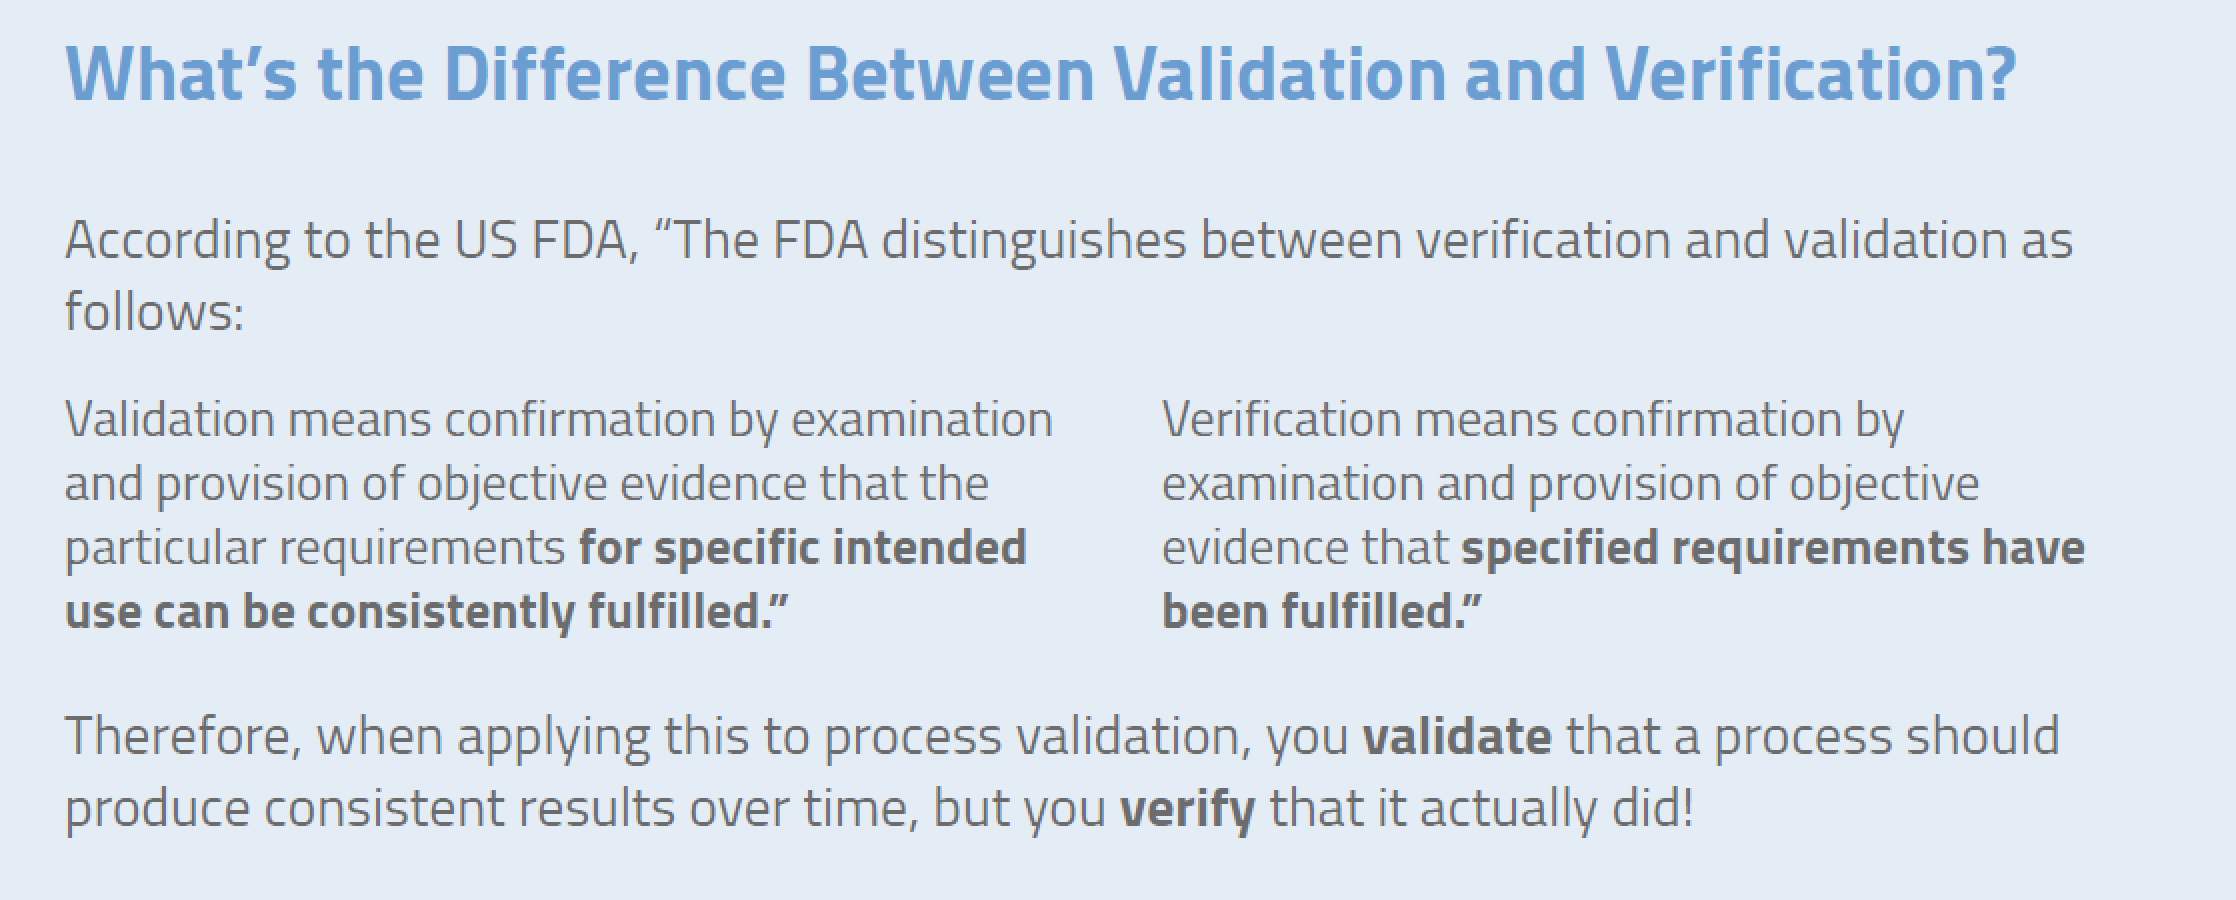 Medical Device Process Validation: What You Need to Know